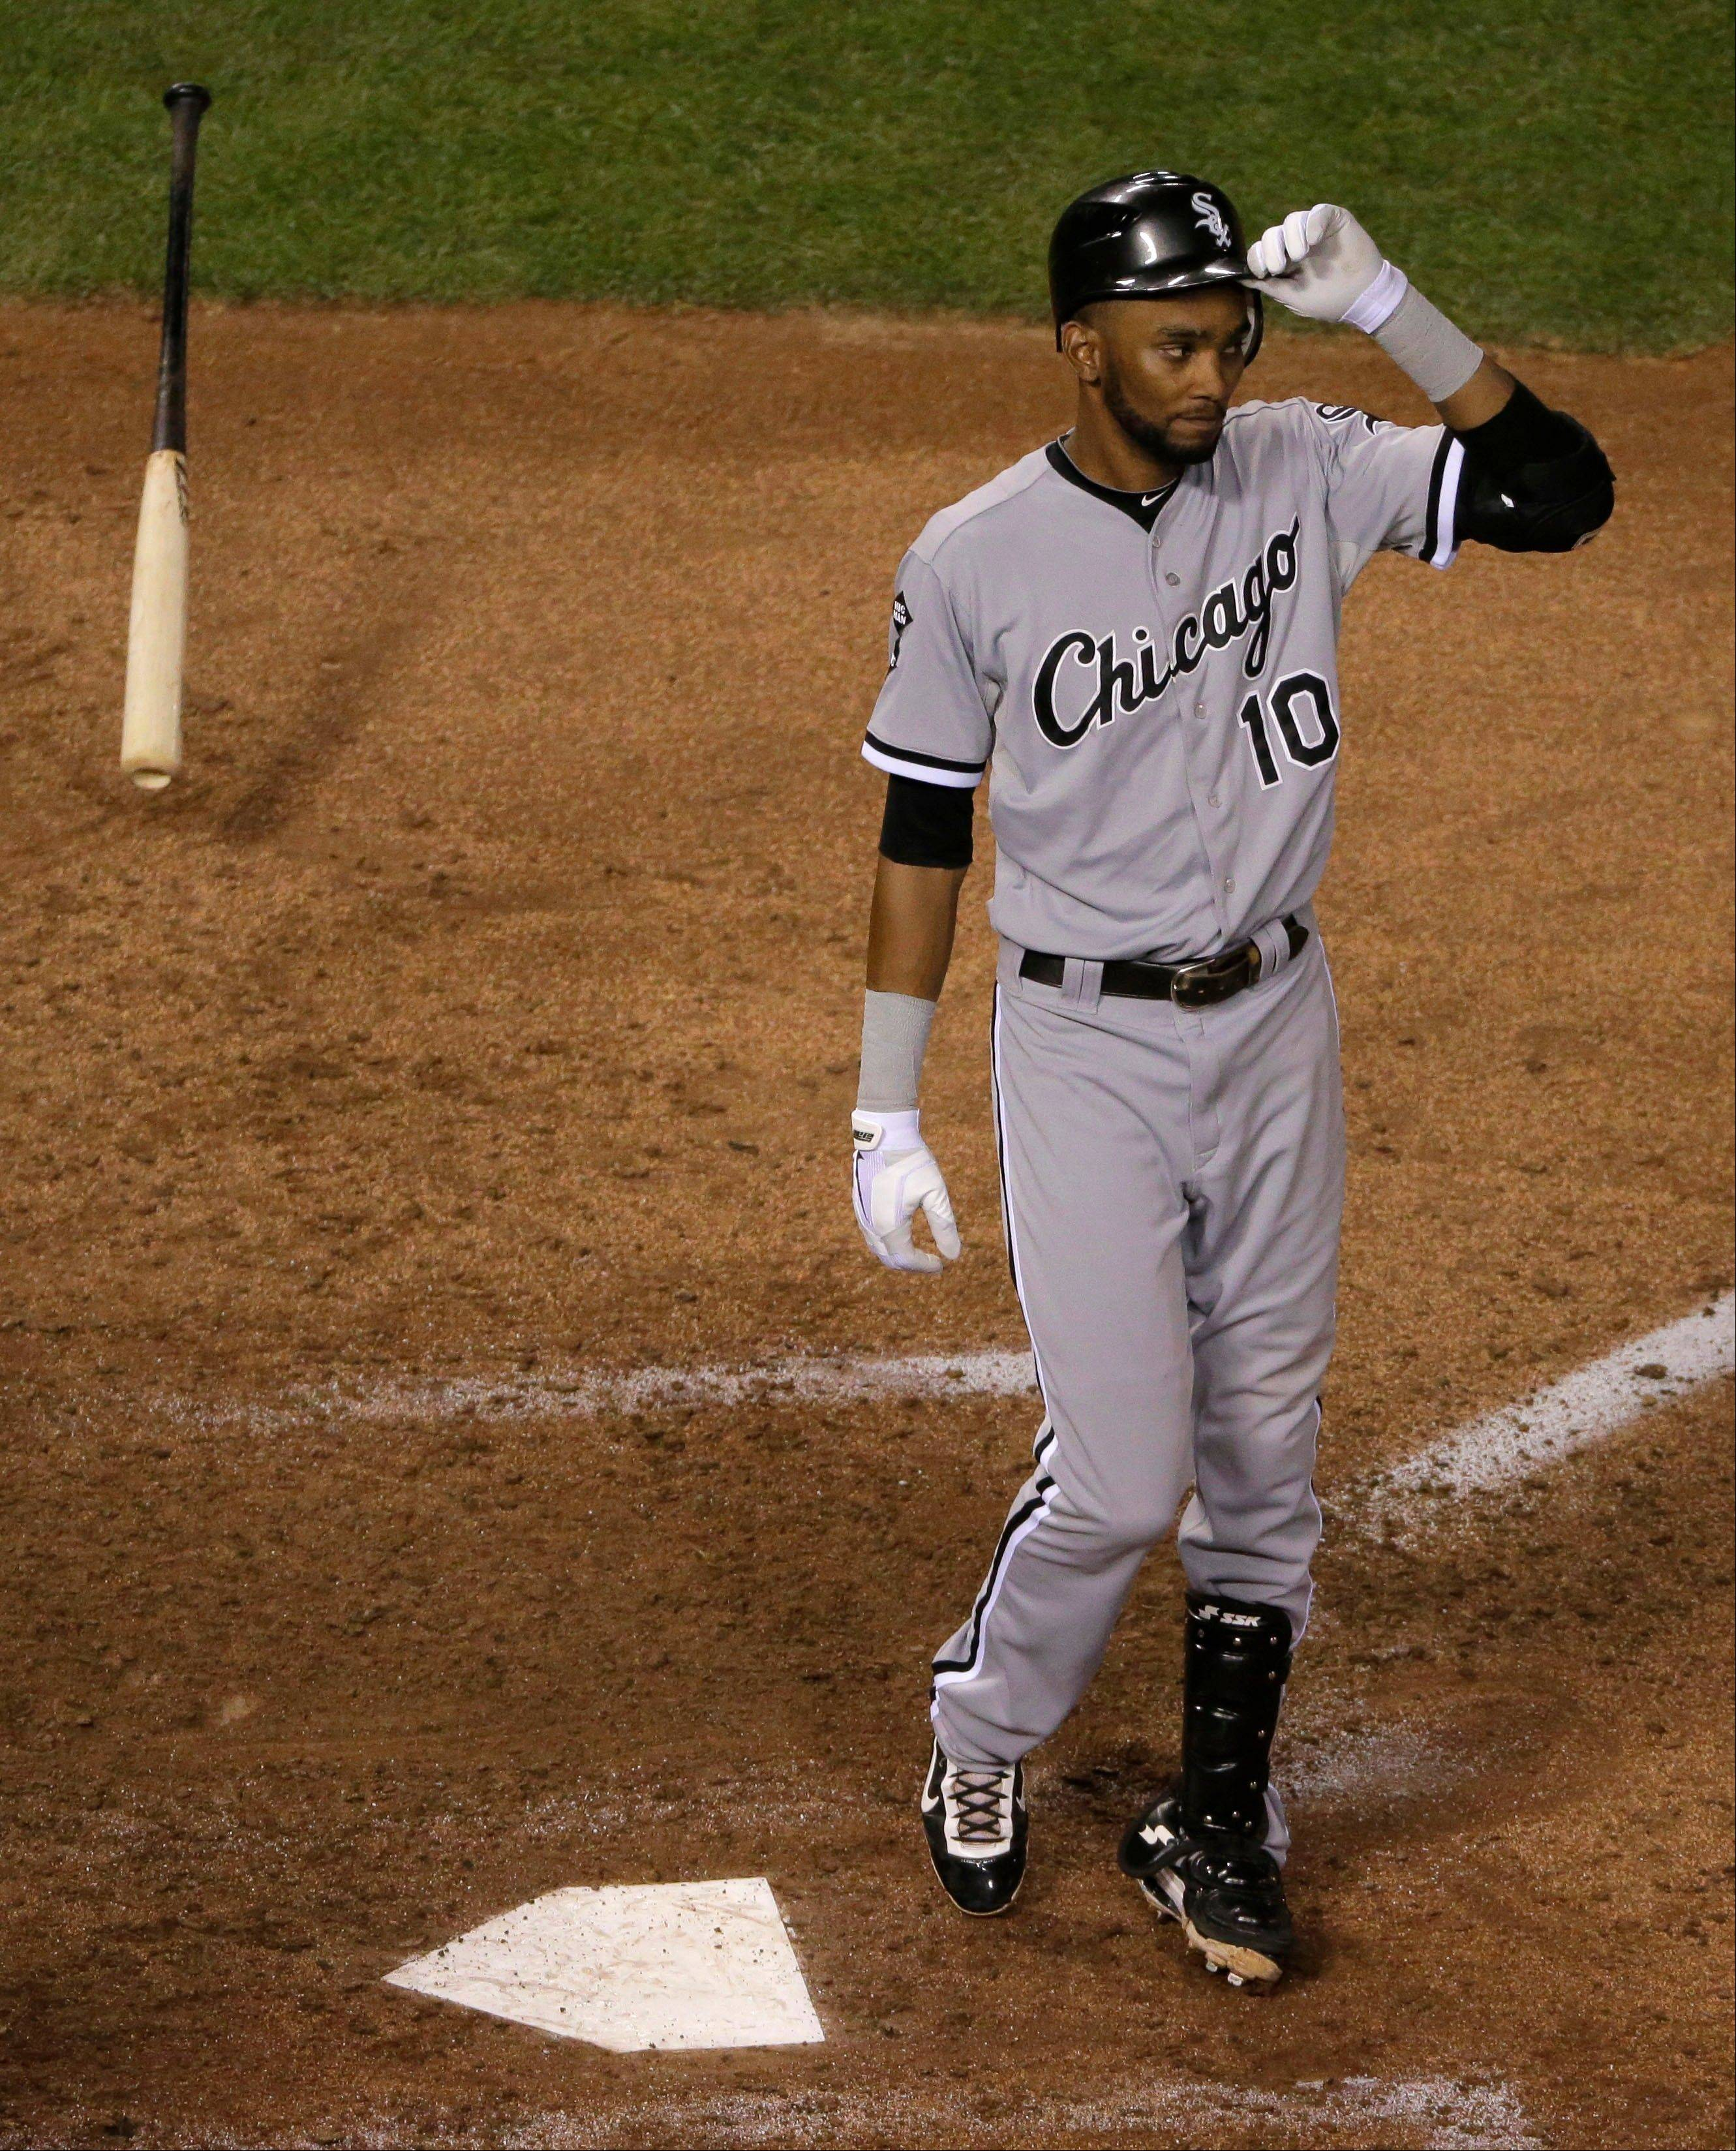 White Sox' lead back to 2 over Detroit